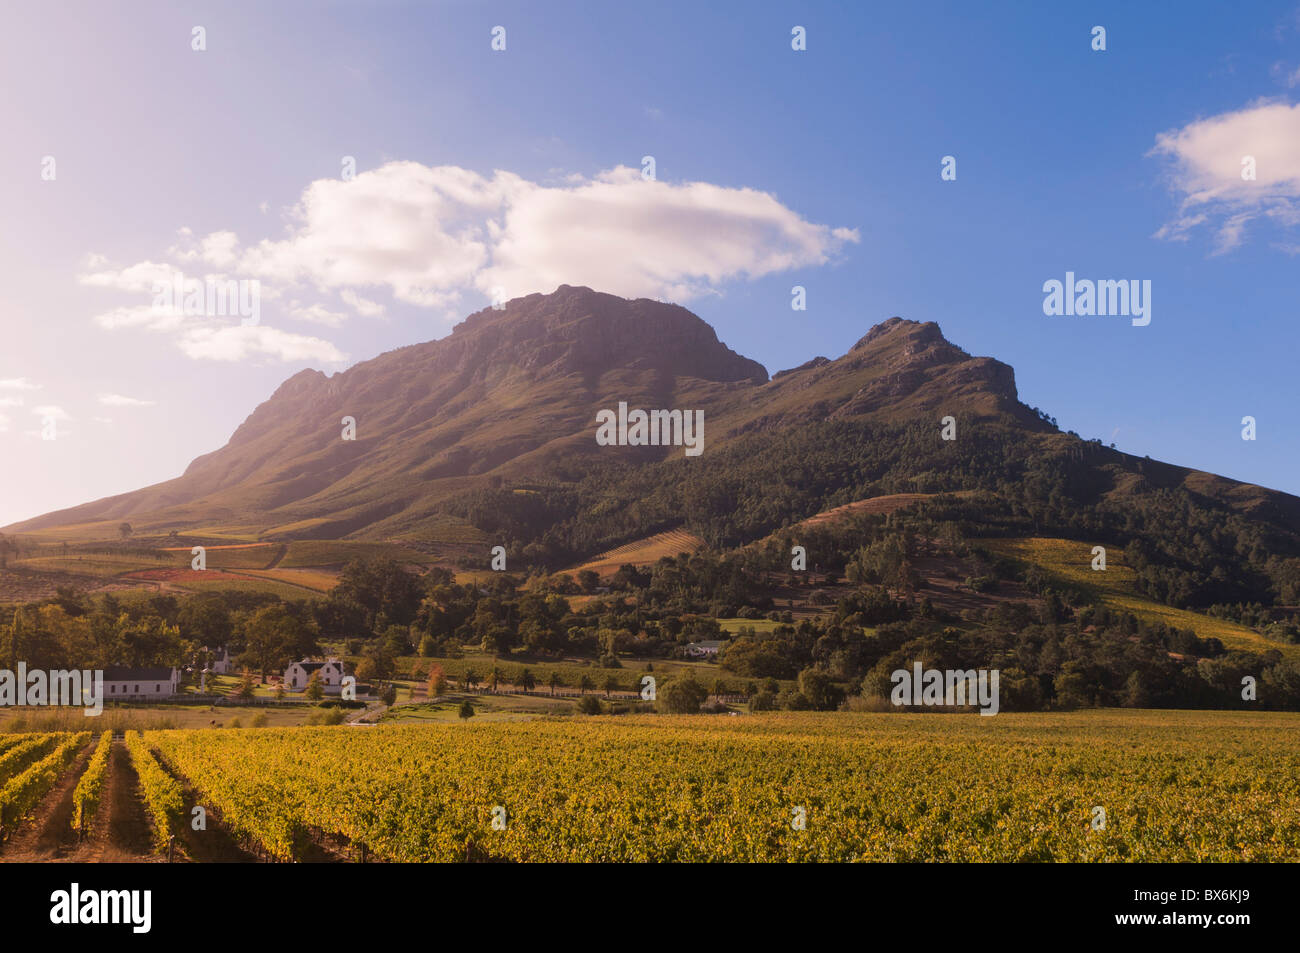 Zorgvliet Wine Estate, Stellenbosch, Cape Province, South Africa, Africa - Stock Image